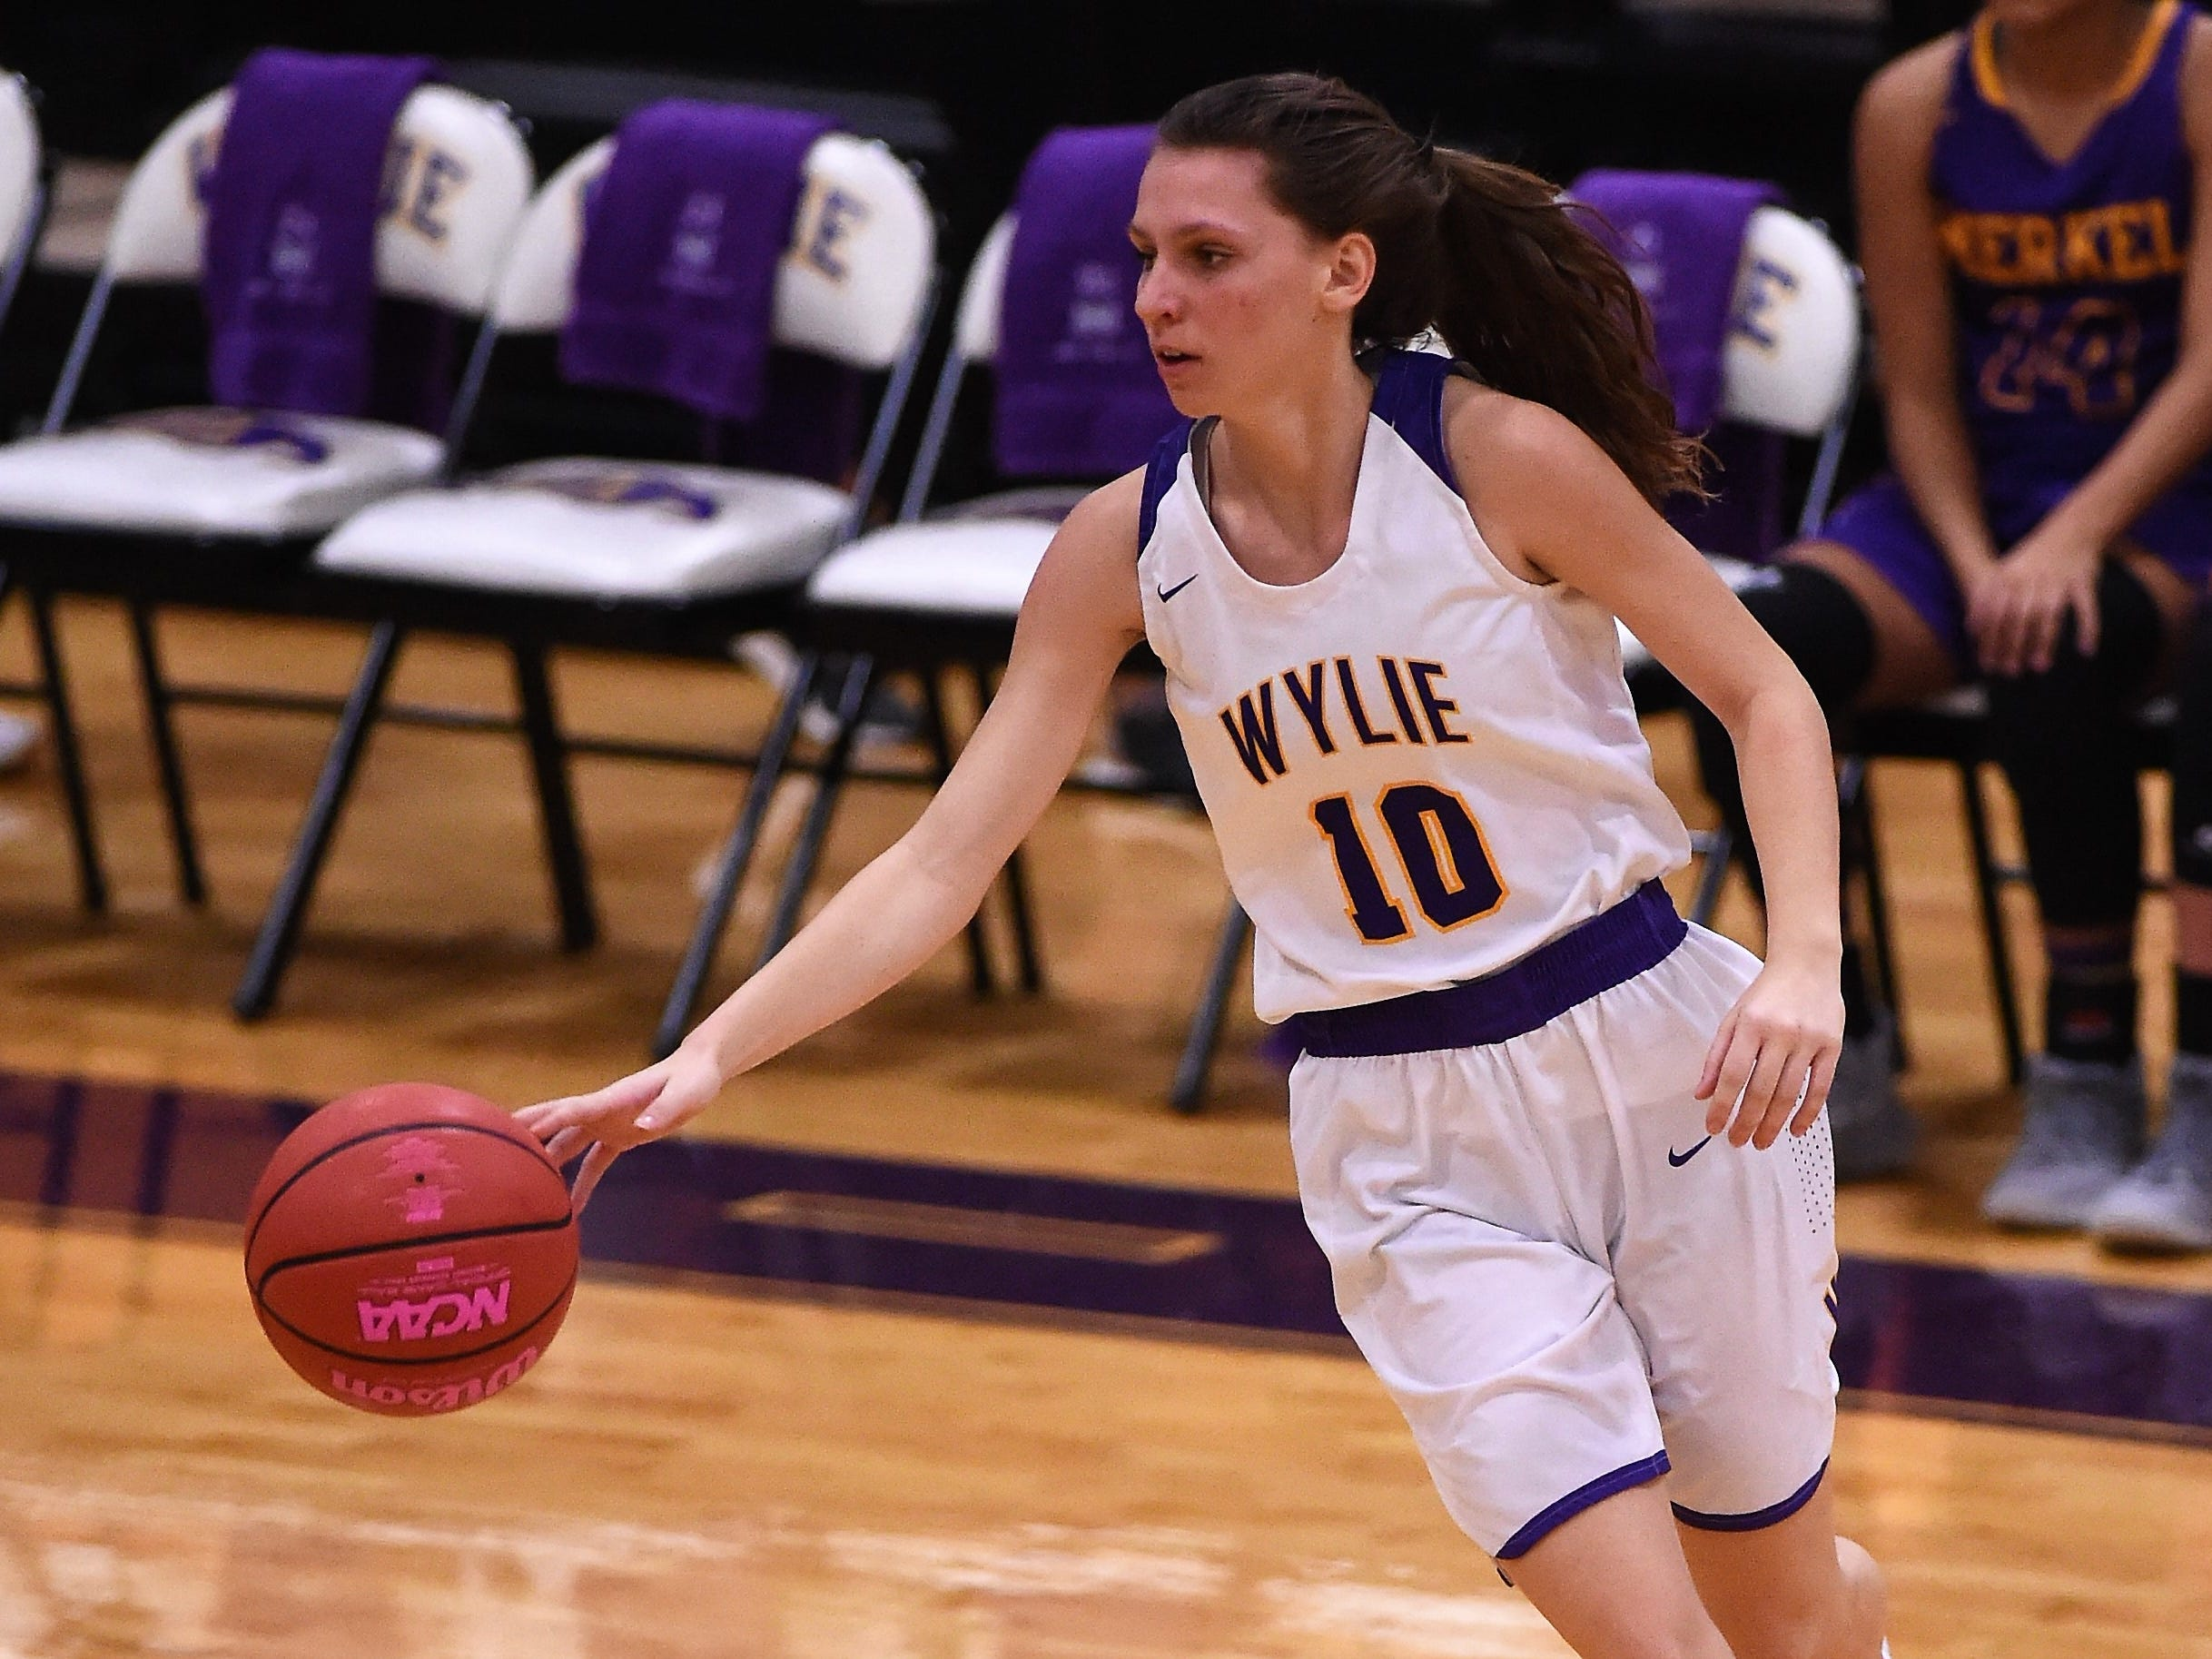 Wylie's Abbey Henson (10) turns with the ball against Merkel in the Coaches vs. Cancer Pink Out game on Tuesday, Dec. 4, 2018. The Lady Bulldogs won 75-39.